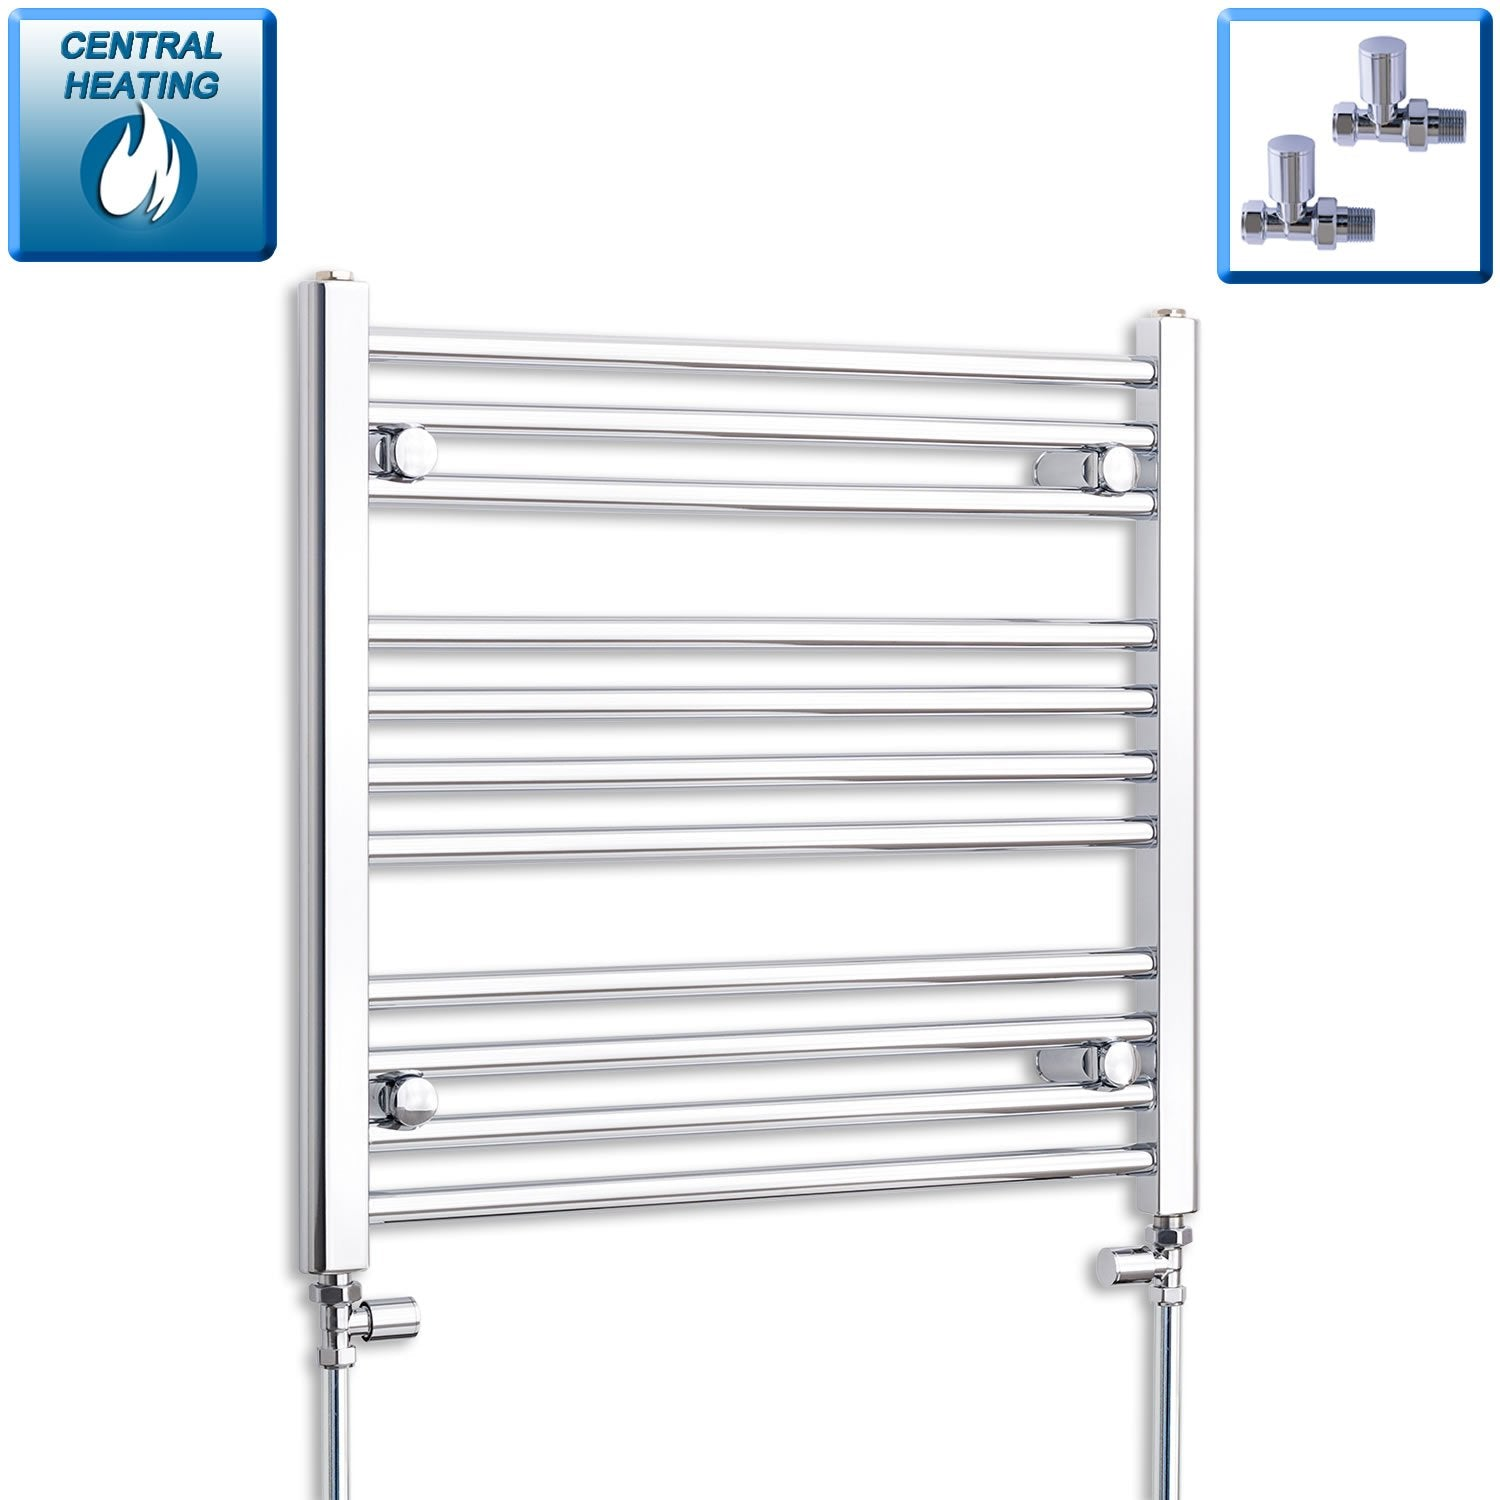 650mm Wide 600mm High Flat Chrome Heated Towel Rail Radiator HTR,With Straight Valve